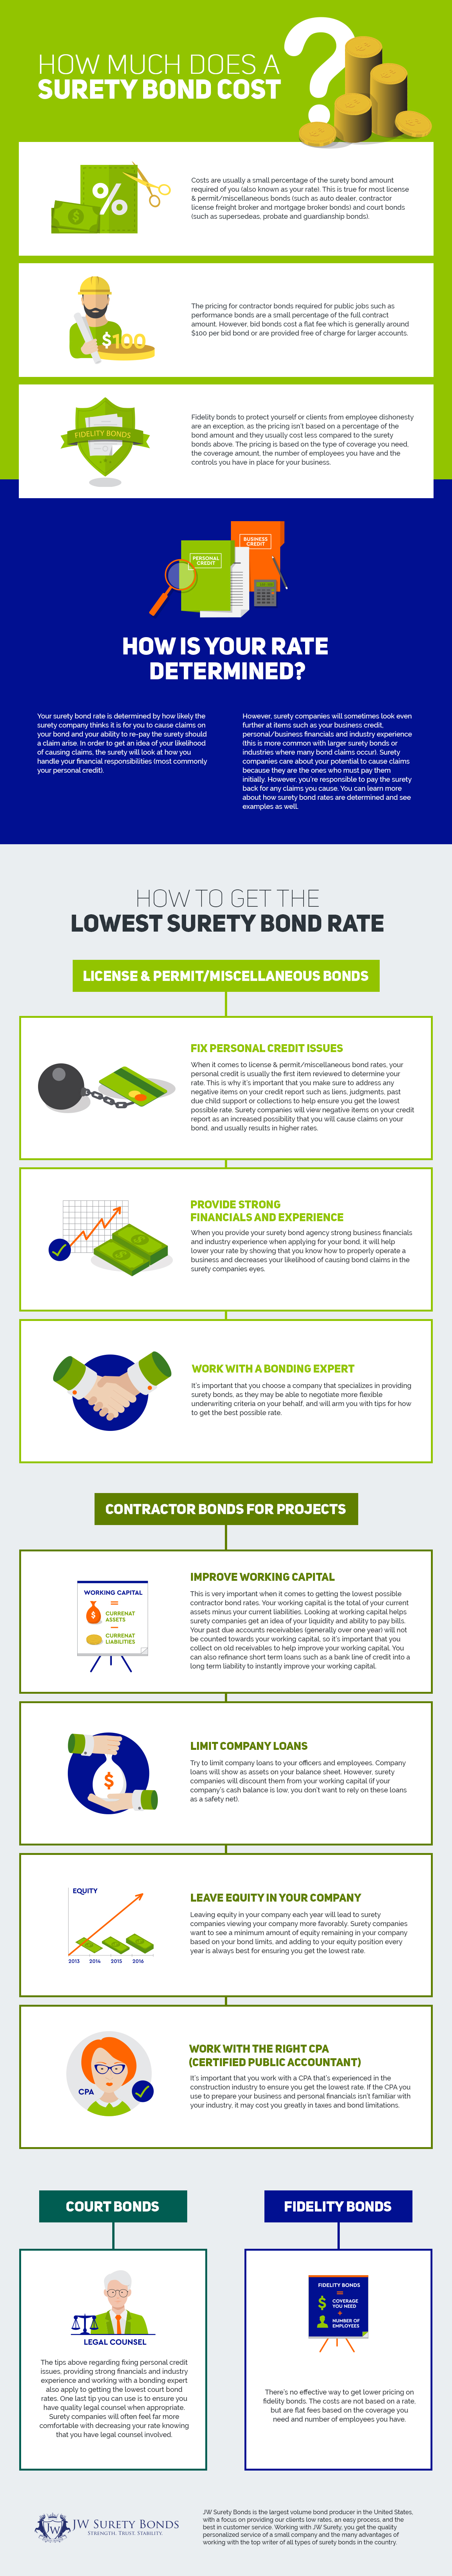 surety bond cost: determine your pricing | jw surety bonds